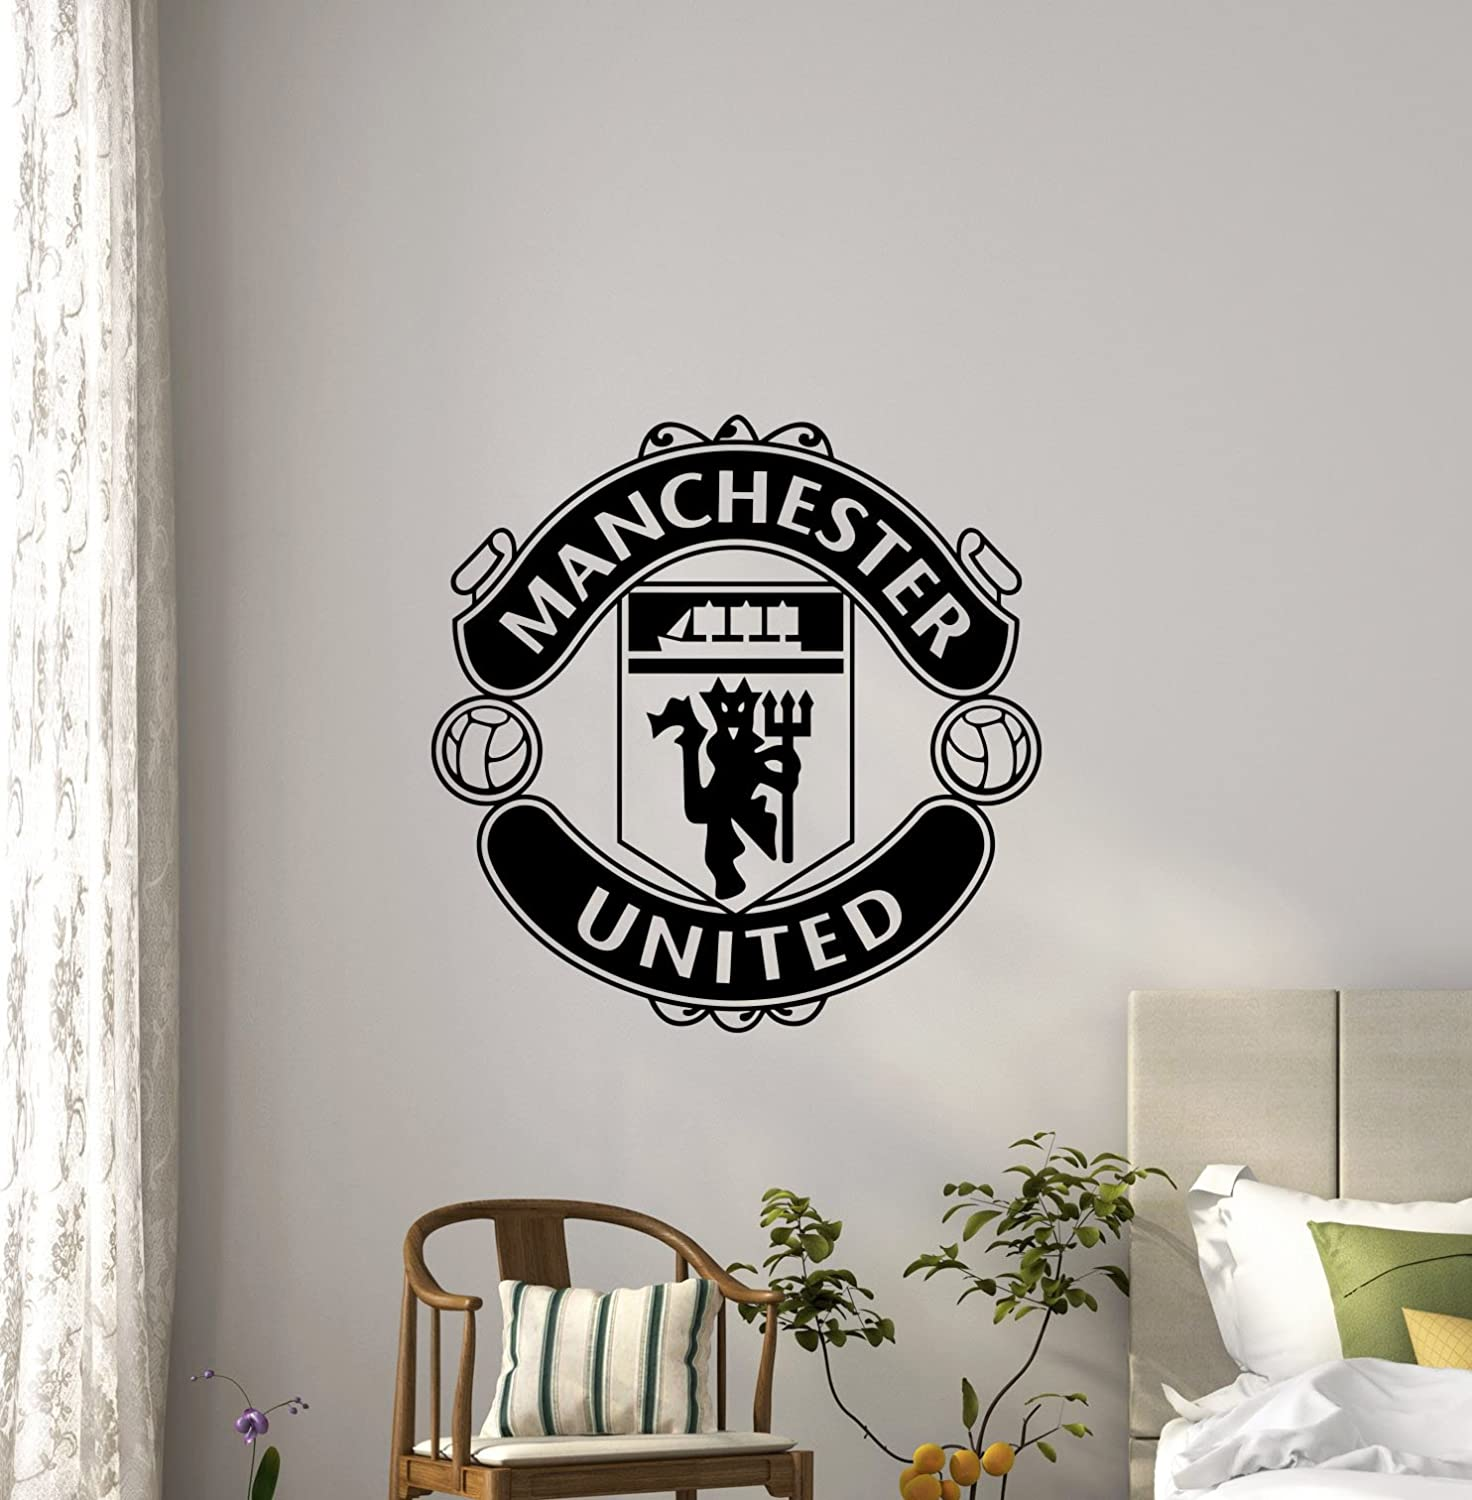 Manchester United Logo Wall Decals Sports Soccer English Football Club Kids Children Poster Stencil Decor Sports Vinyl Sticker Home Art Design Removable Mural (488n)